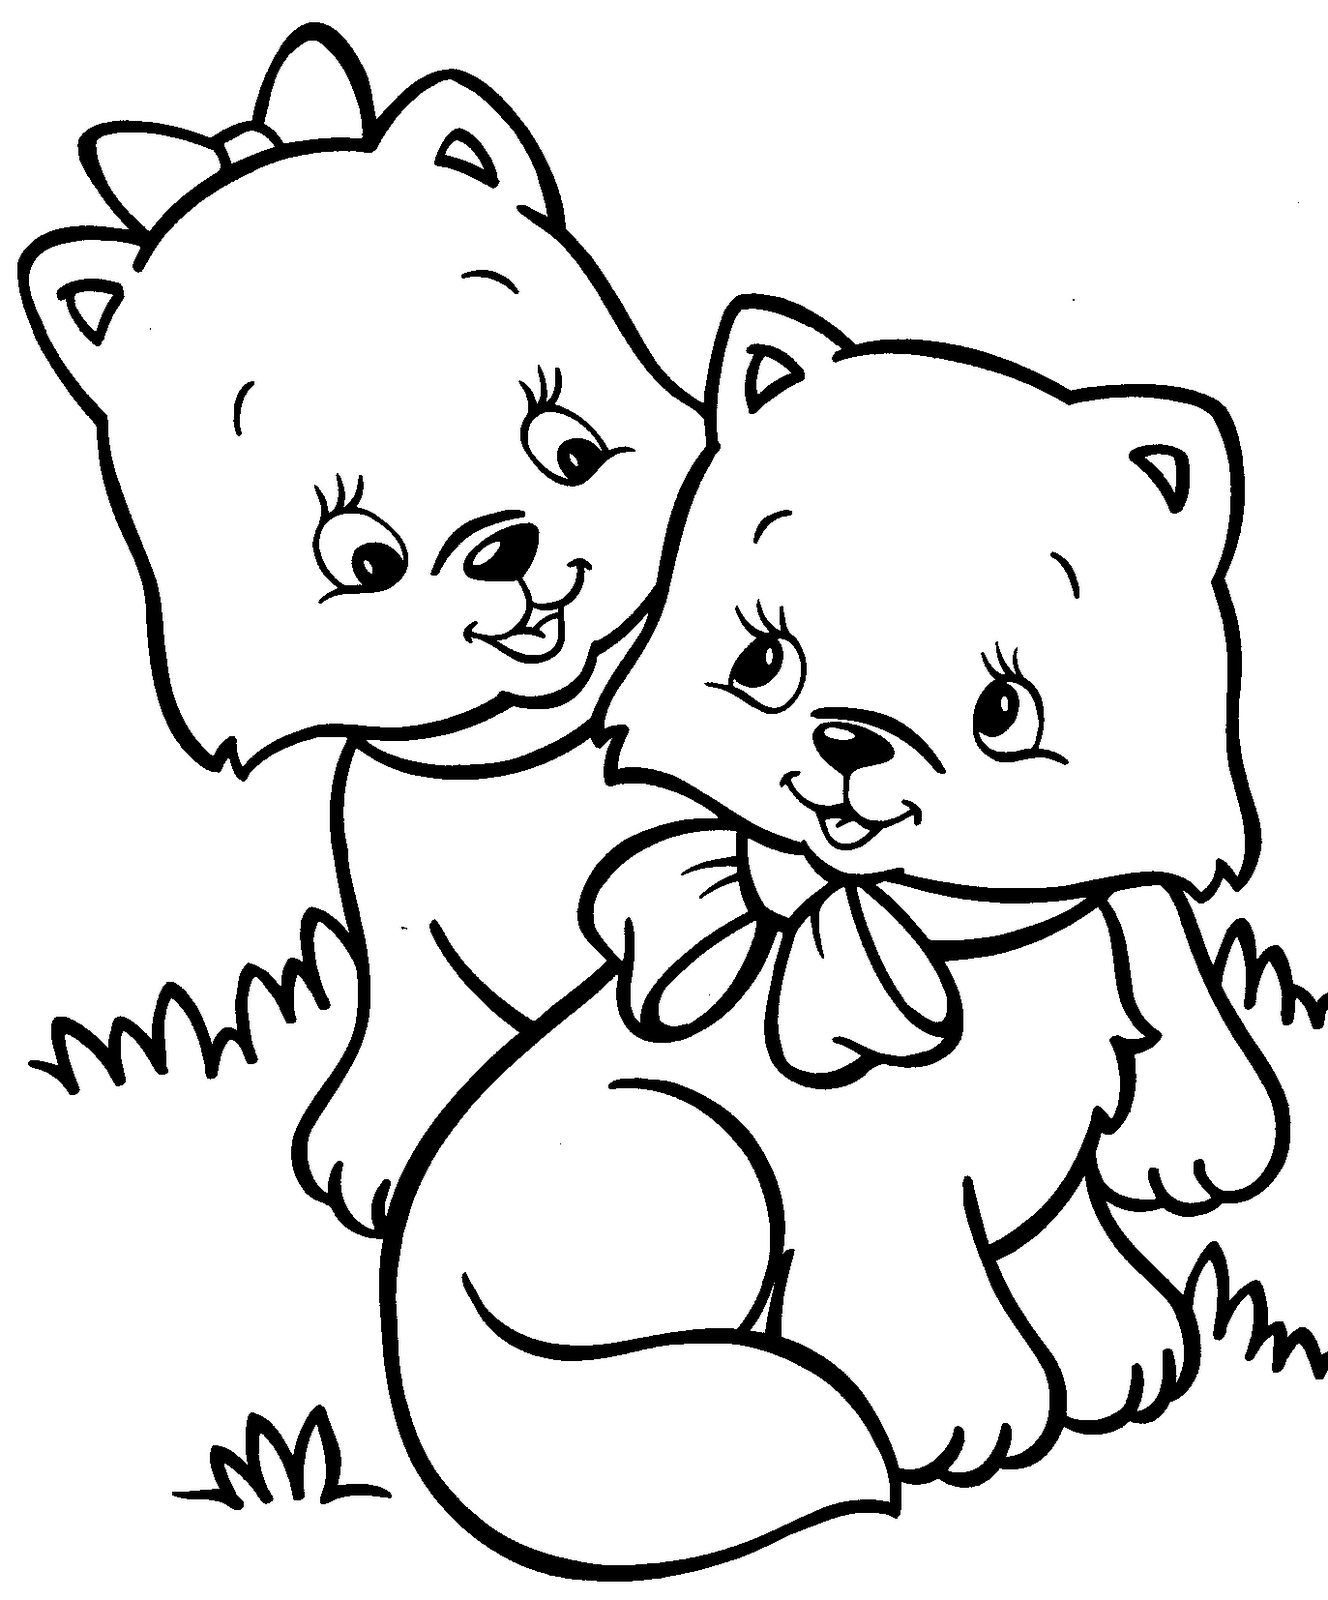 children coloring book pages - photo#31